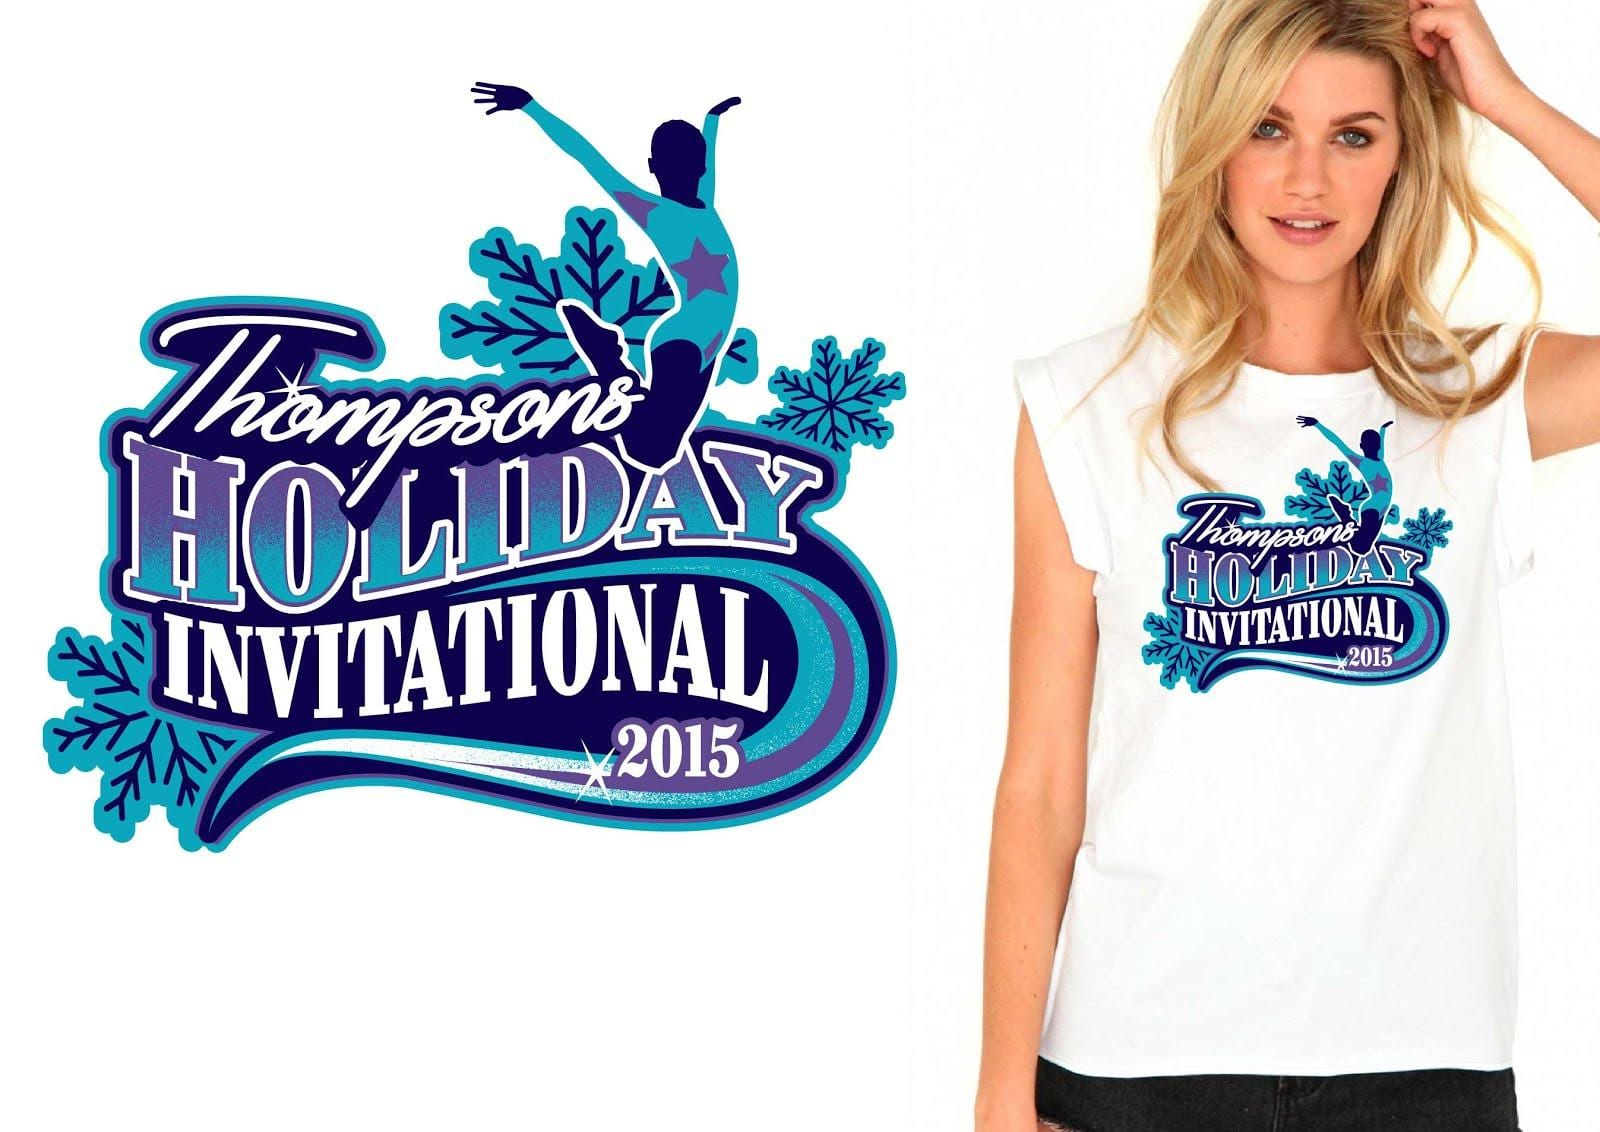 GYMNASTICS VECTOR LOGO DESIGN FOR TSHIRT WWW.URARTSTUDIO.COM